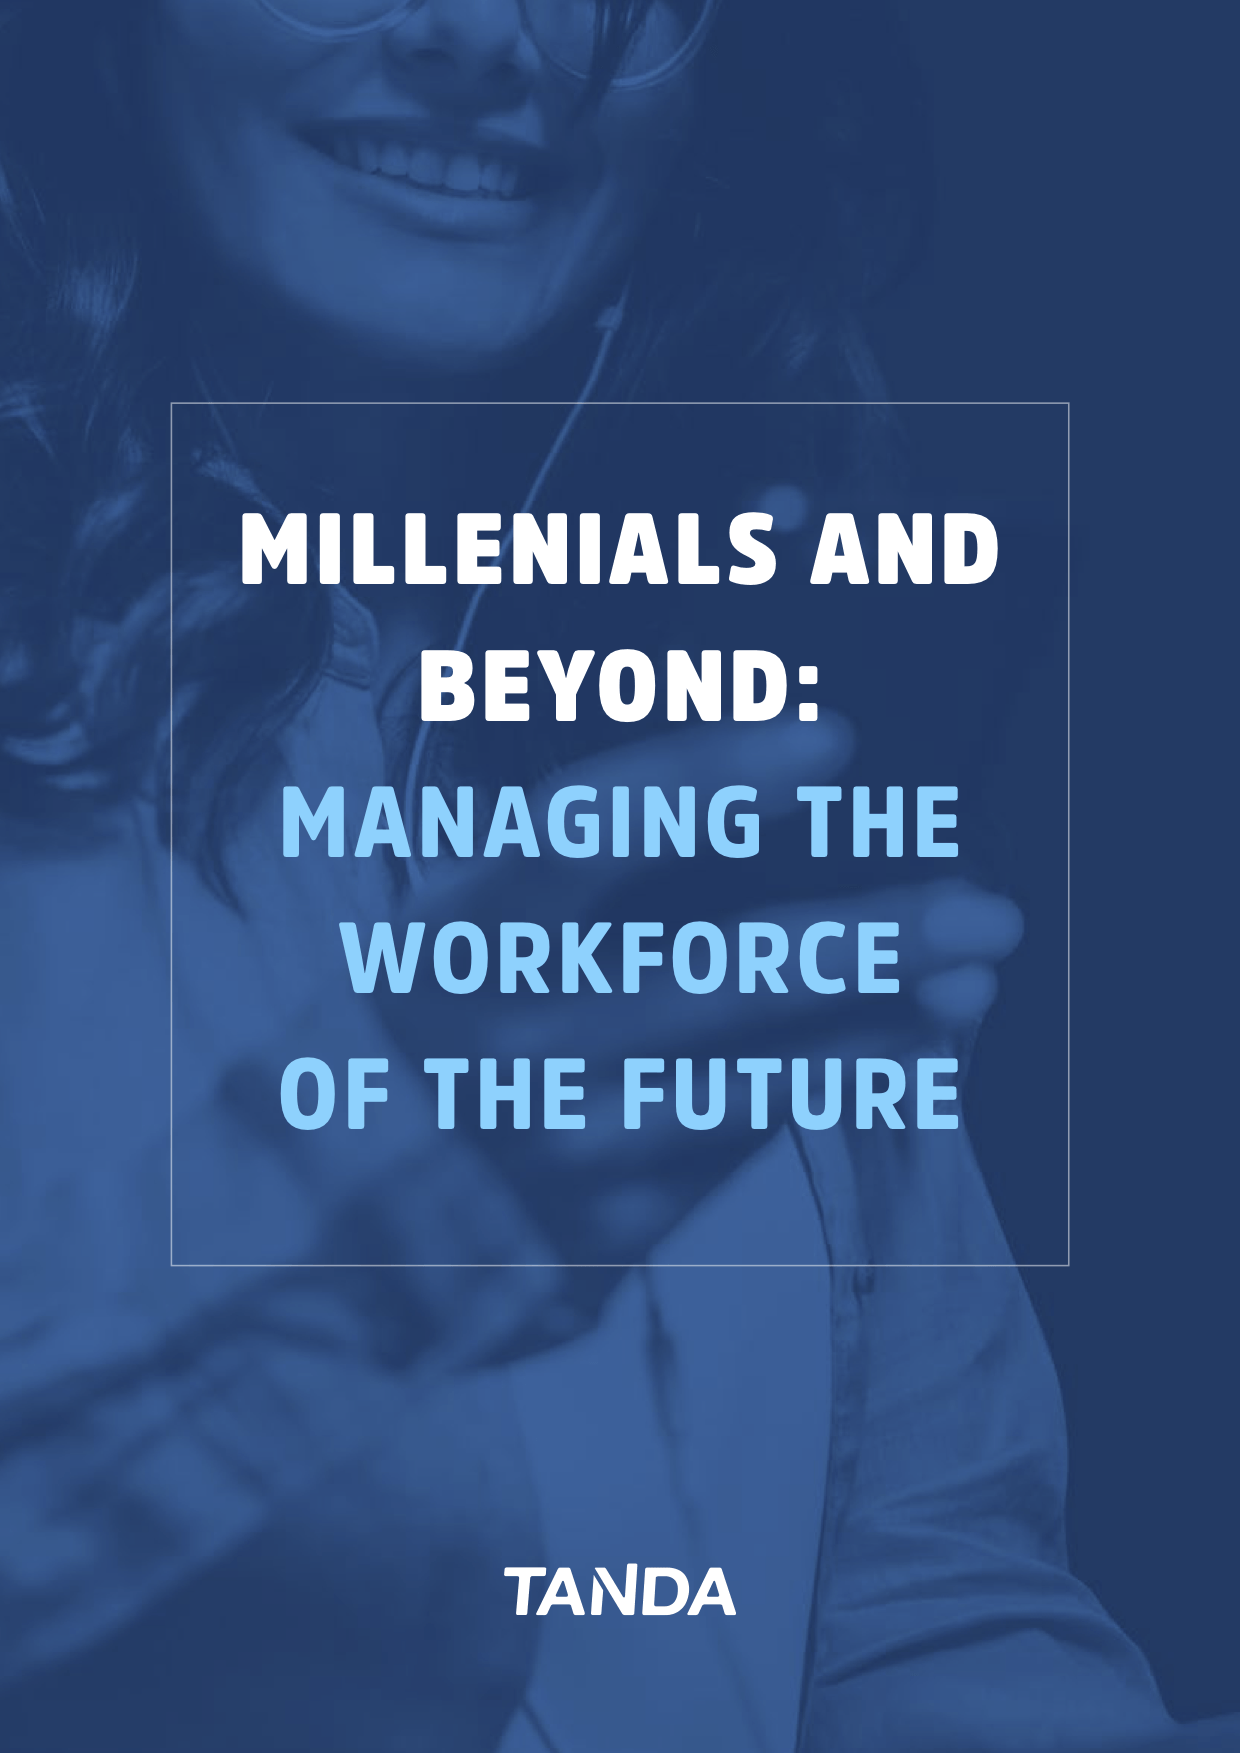 Millennials and Beyond: Managing the Workforce of the Future